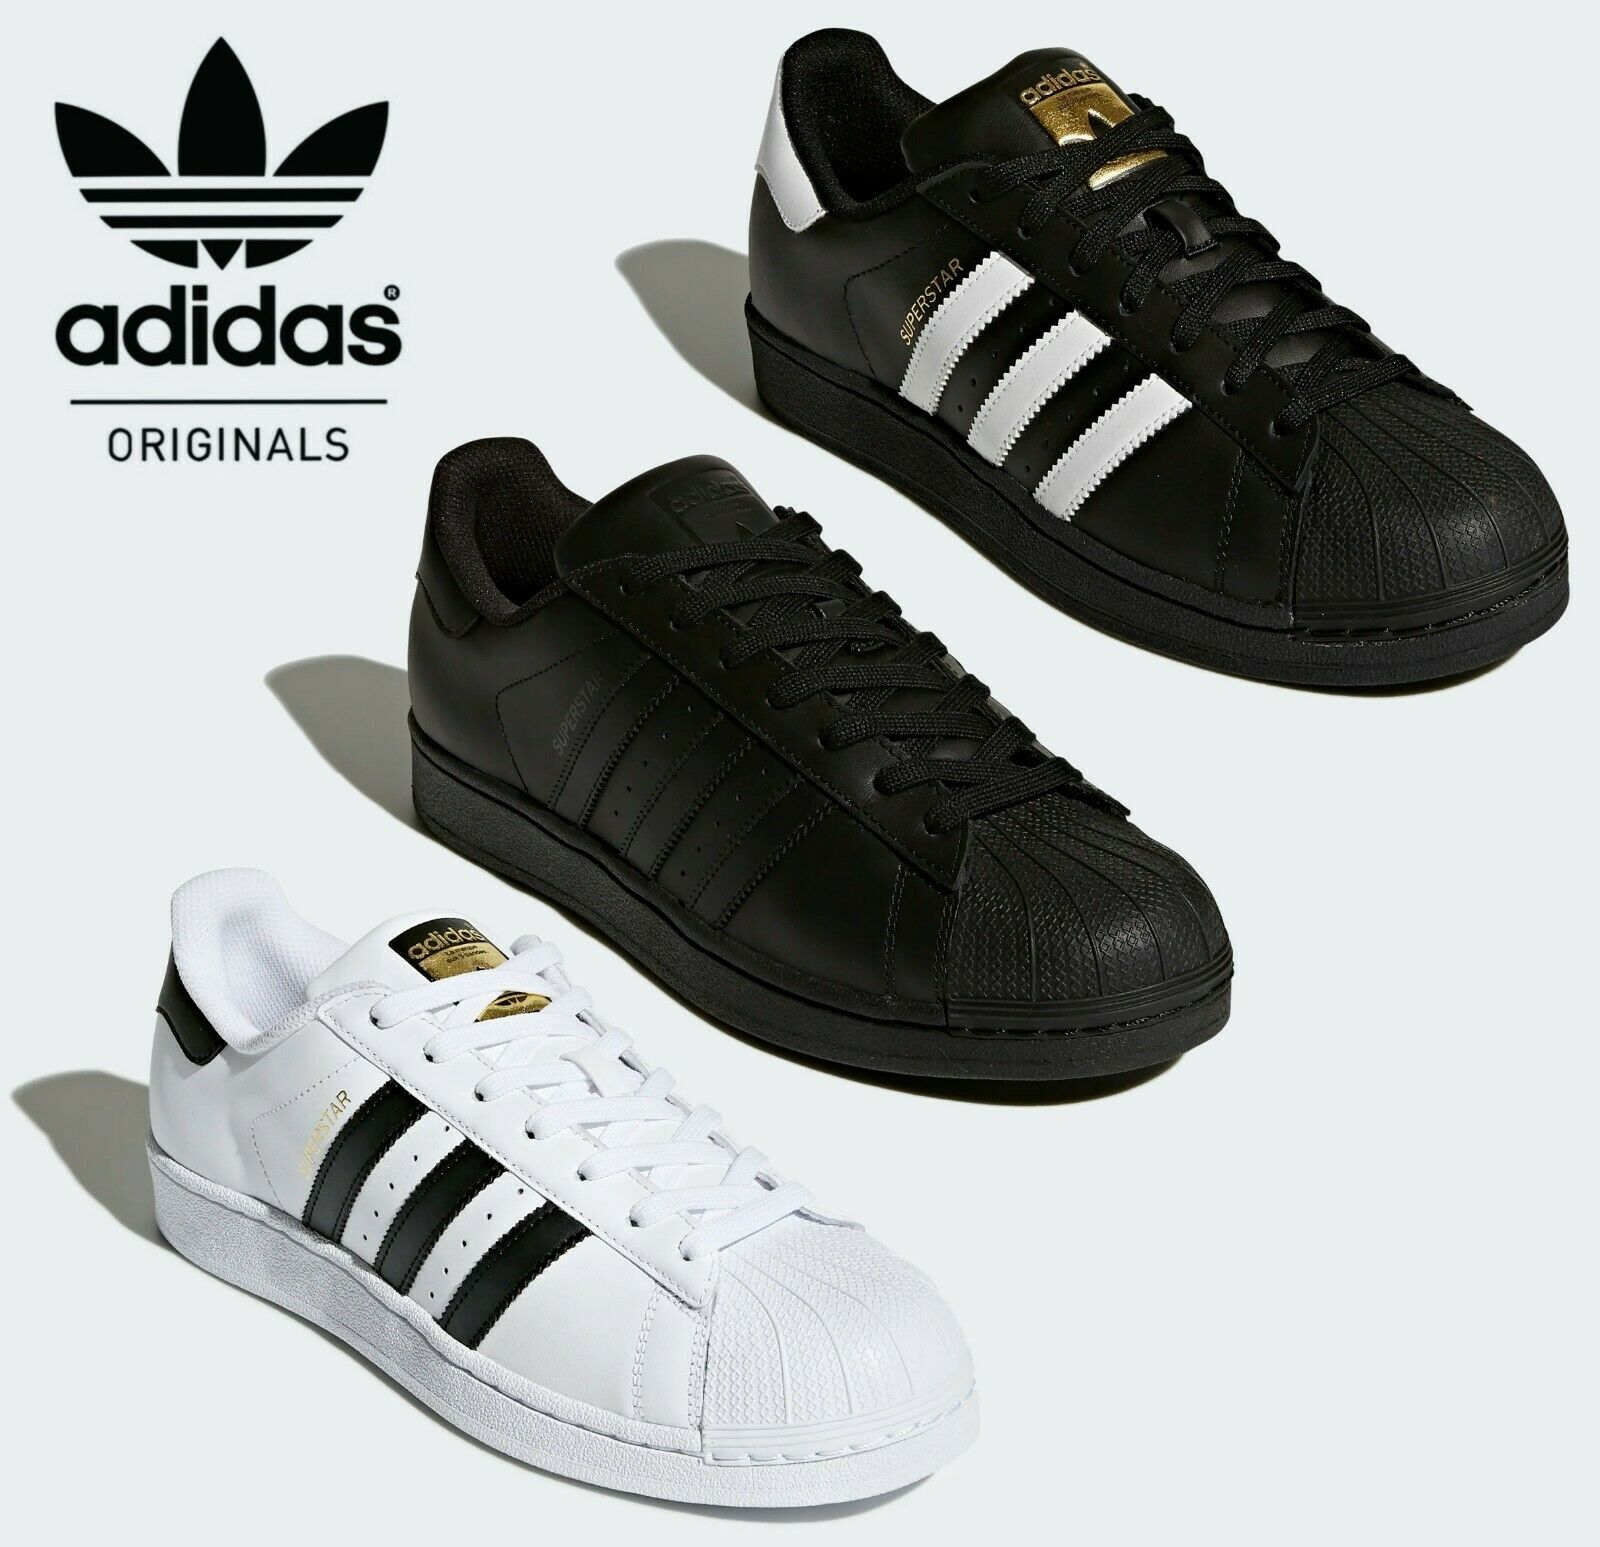 ded7ce67d7 Details about ✅ 24Hr DELIVERY ✅ Adidas Superstar Foundation Originals Retro  Shell Toe Trainers